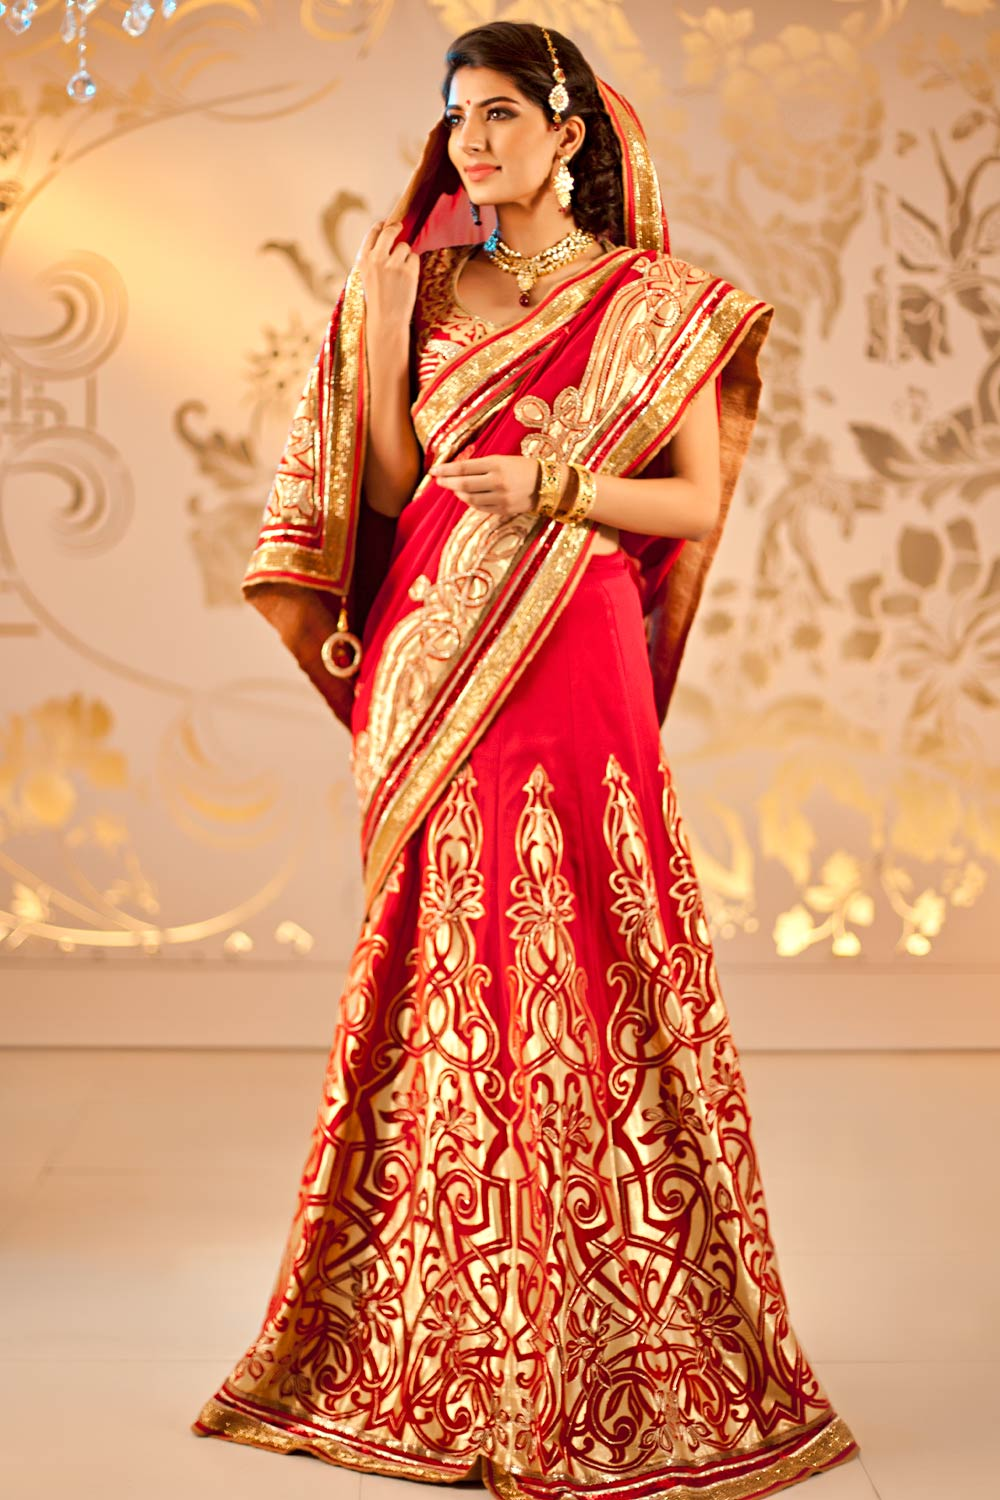 Bridal Sarees | Indian Bridal Sarees | Bridal Sarees for Parties |Bridal Party Wear Sarees ...